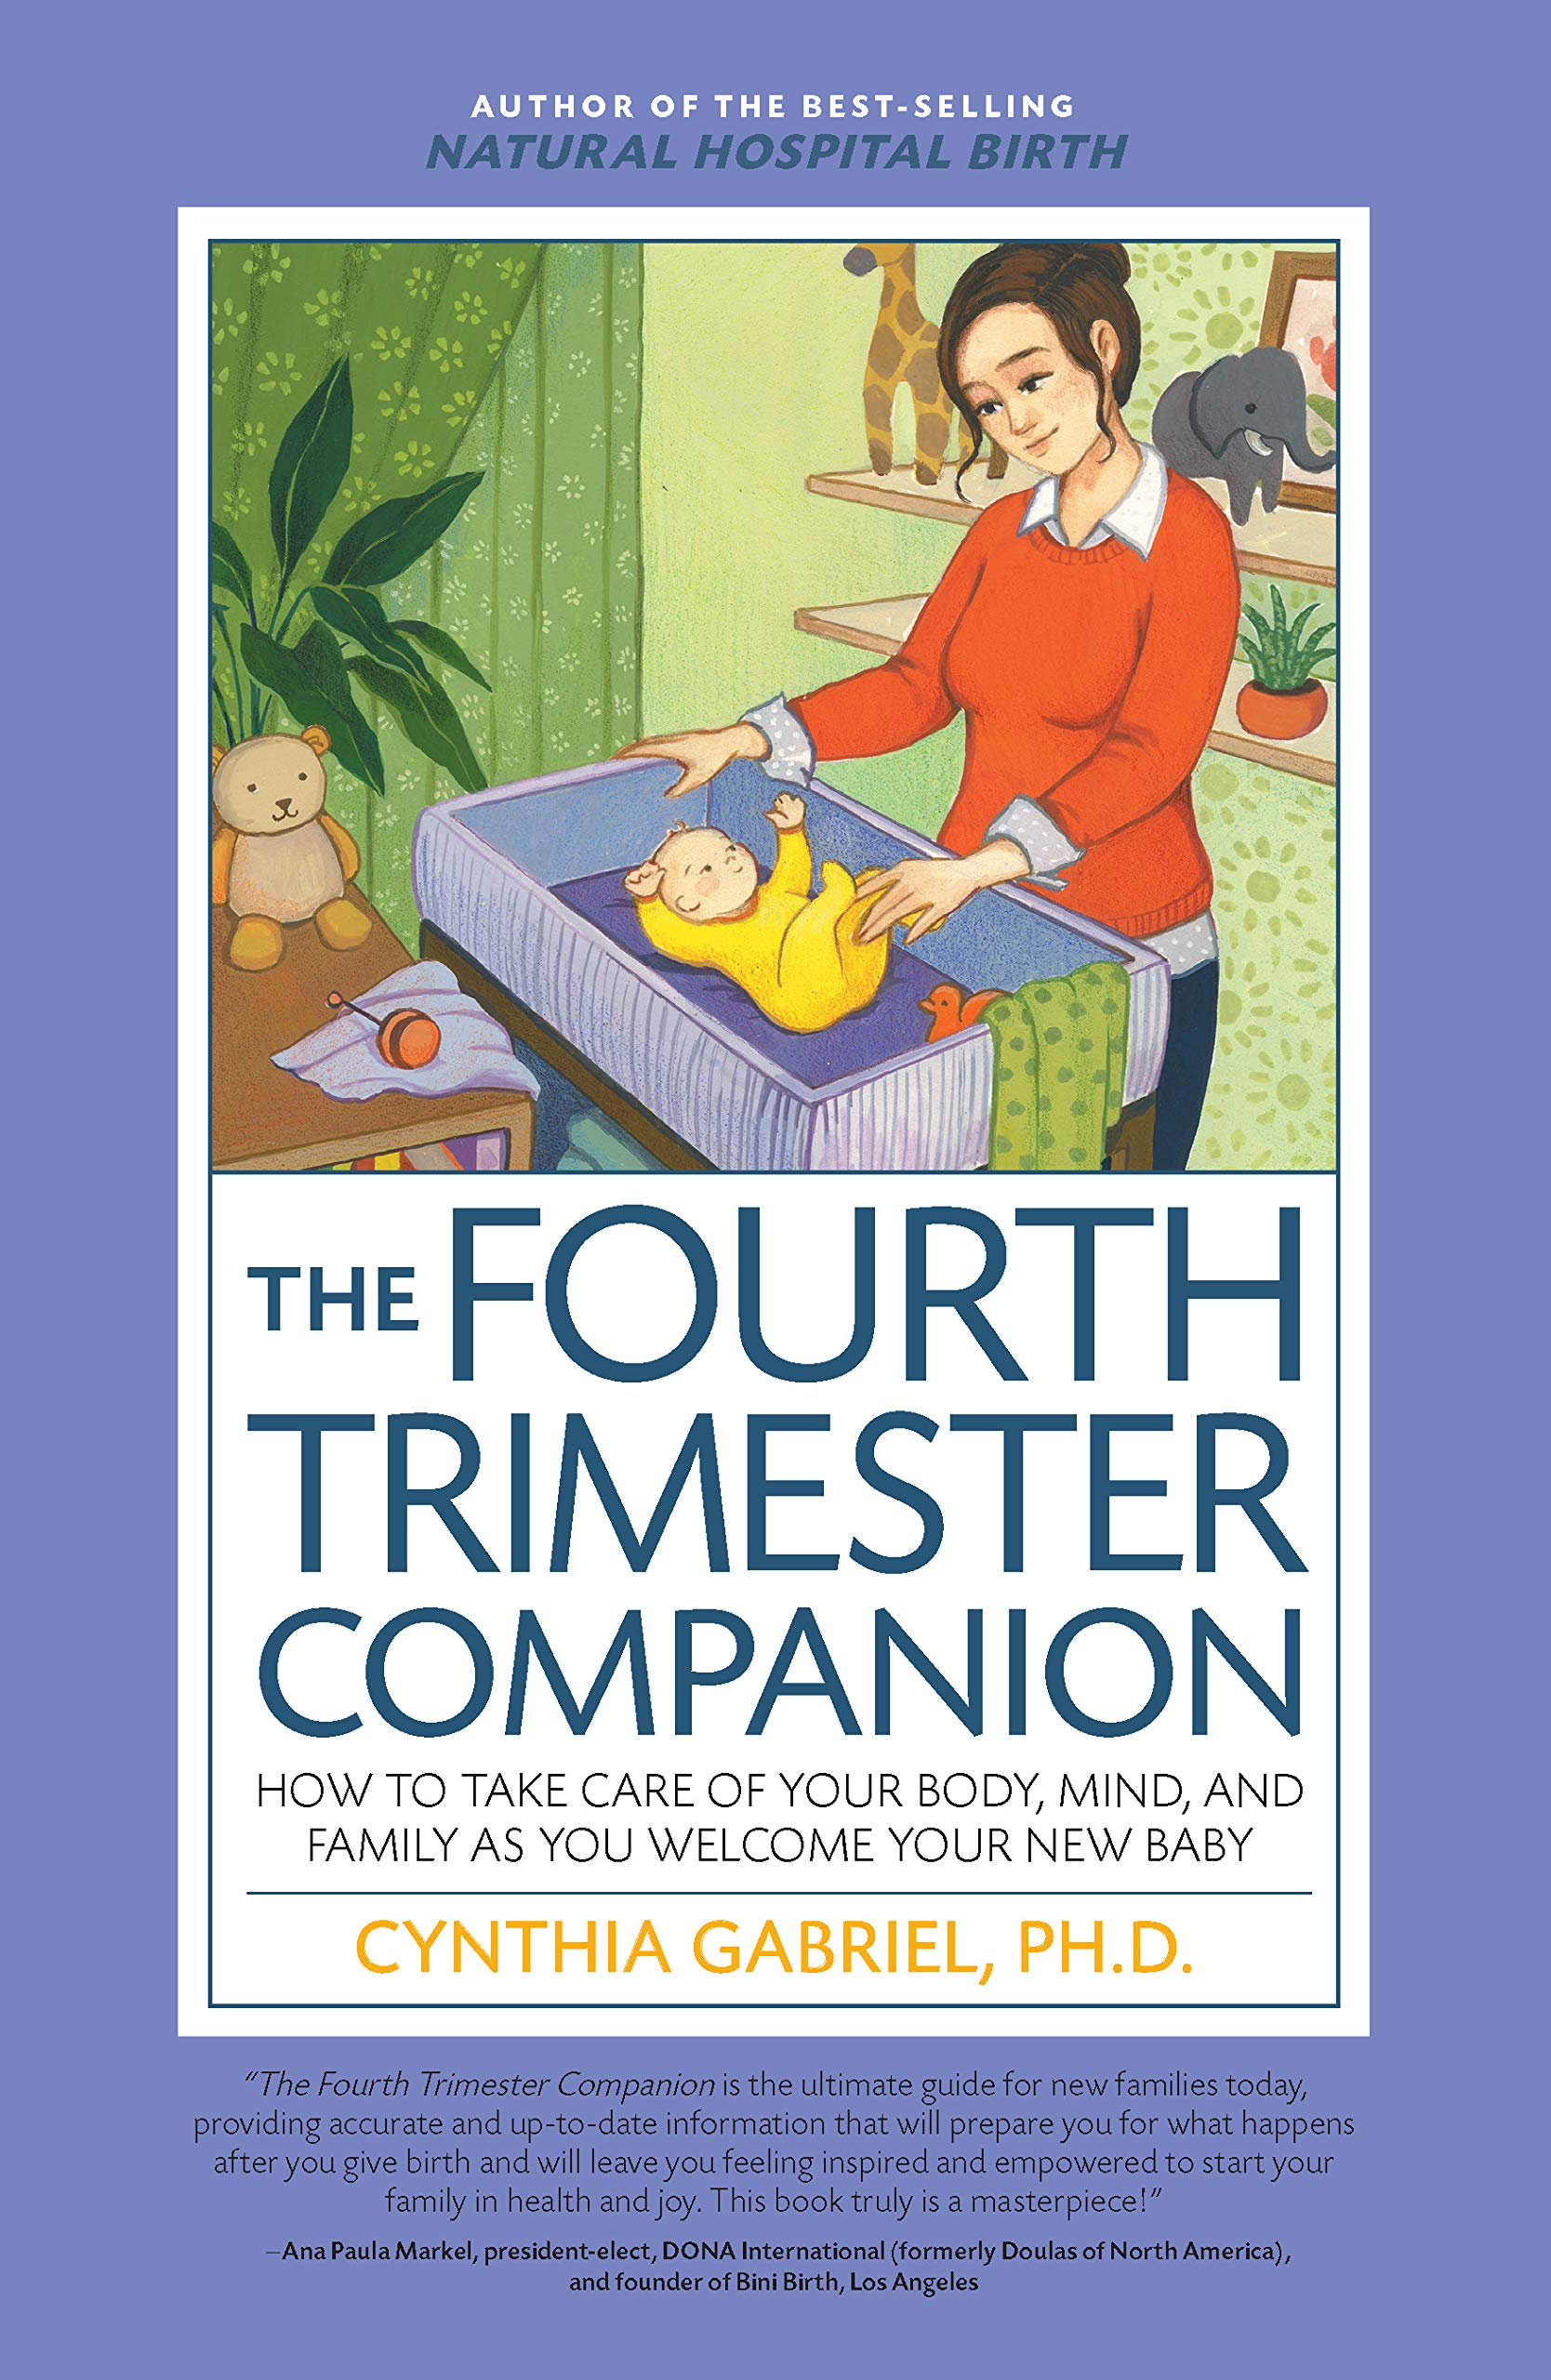 53104433e950e The Fourth Trimester Companion: How to Take Care of Your Body, Mind ...